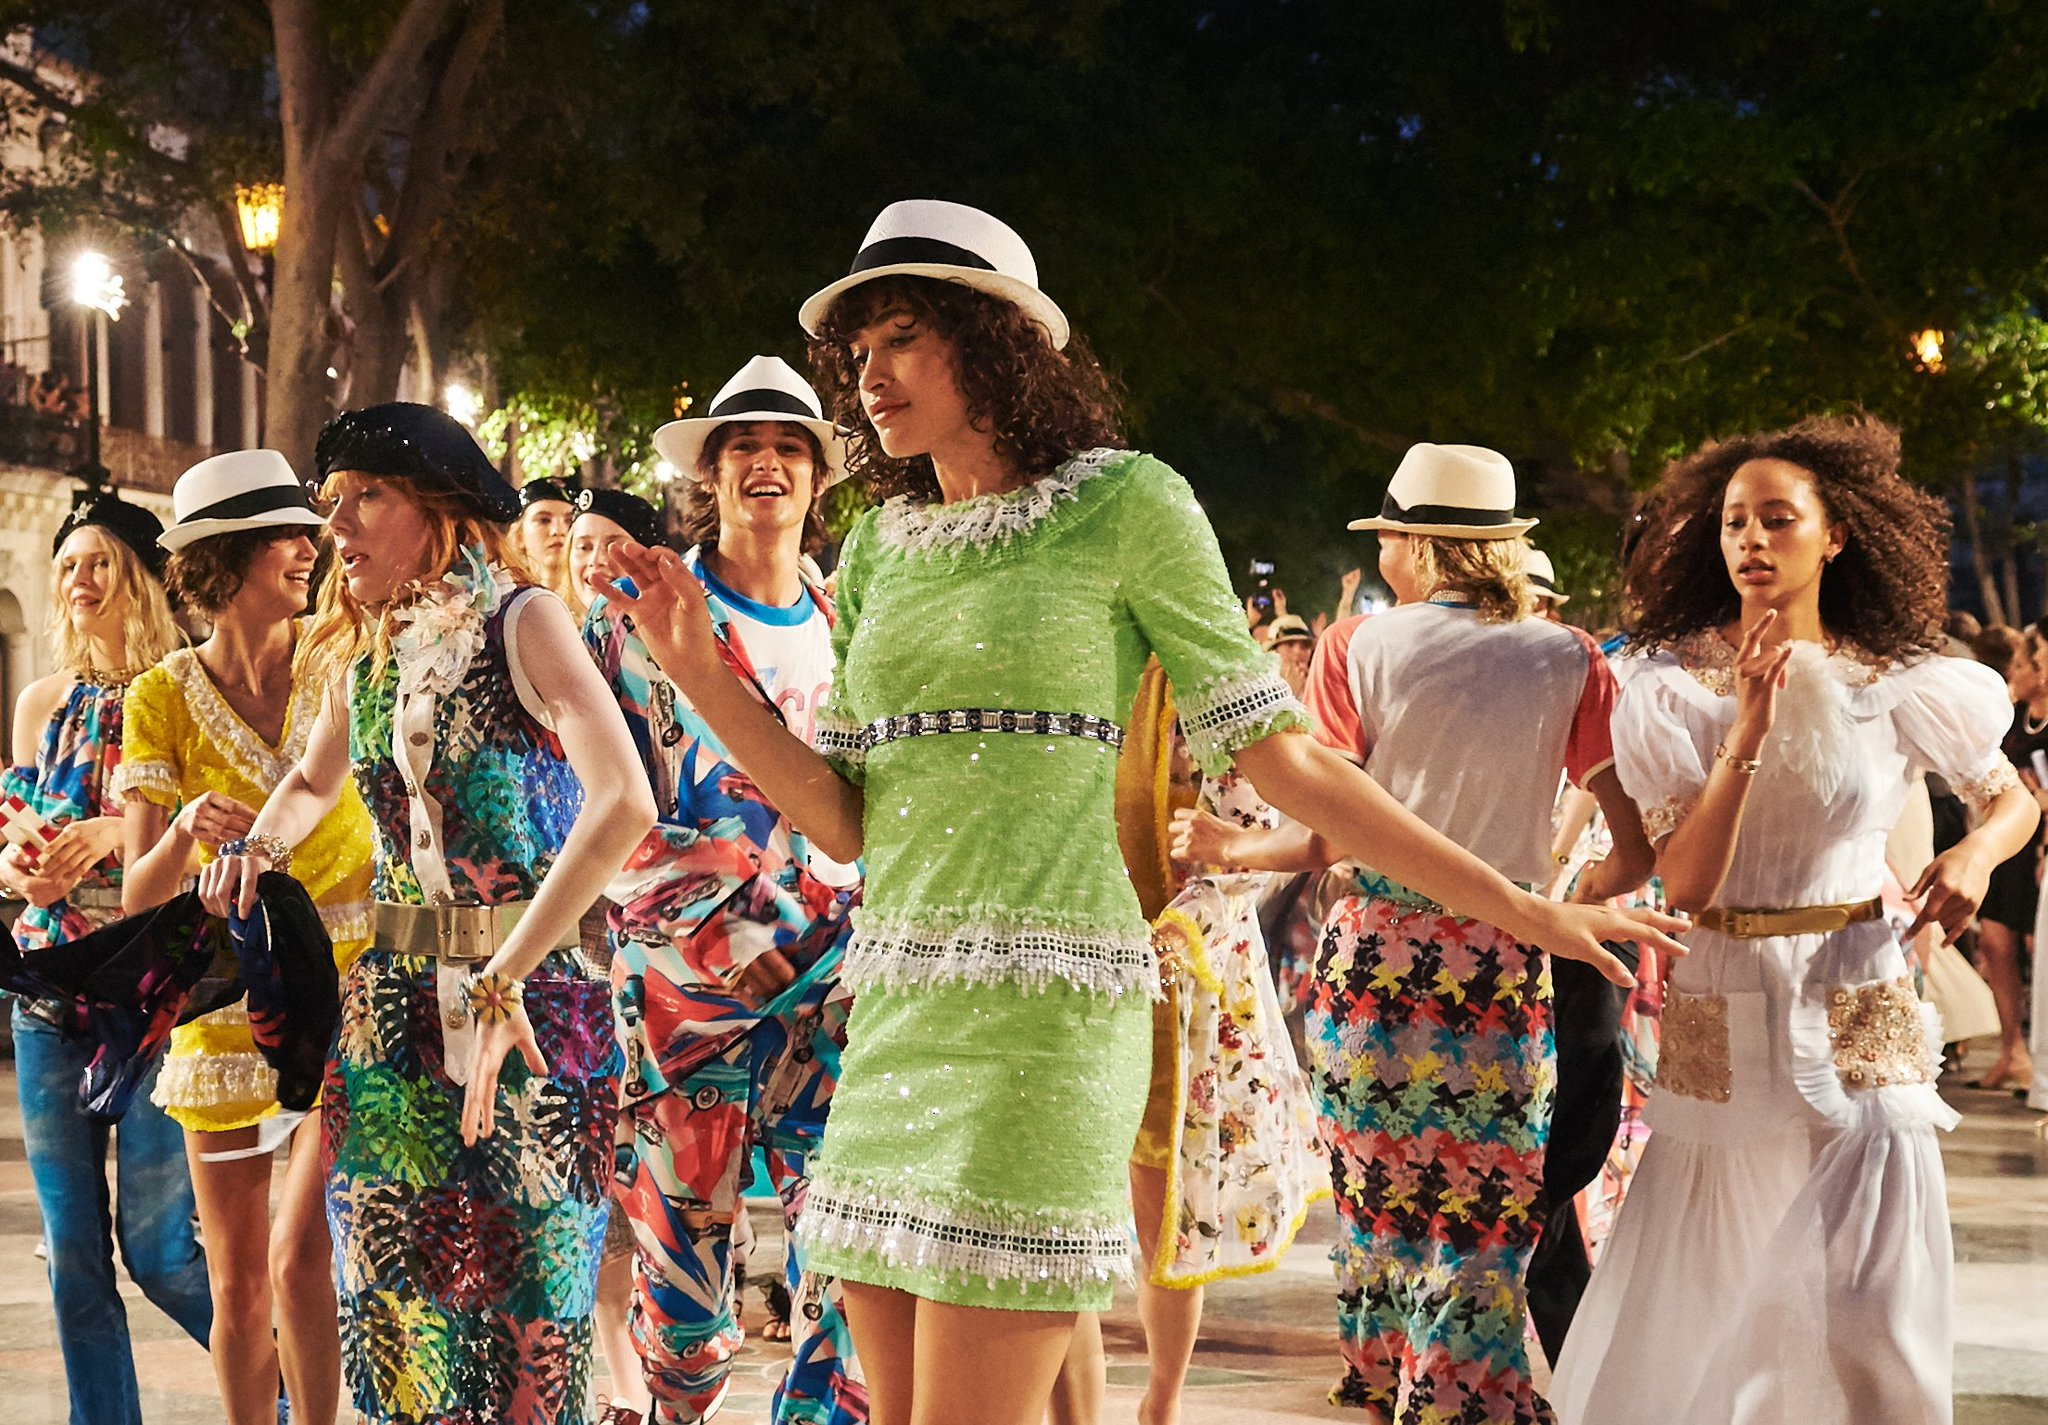 Finale of the Cruise 2016/17 show at the Paseo del Prado, Havana. #ChanelCruiseCuba #CocoCuba https://t.co/rjC9DeXyMj